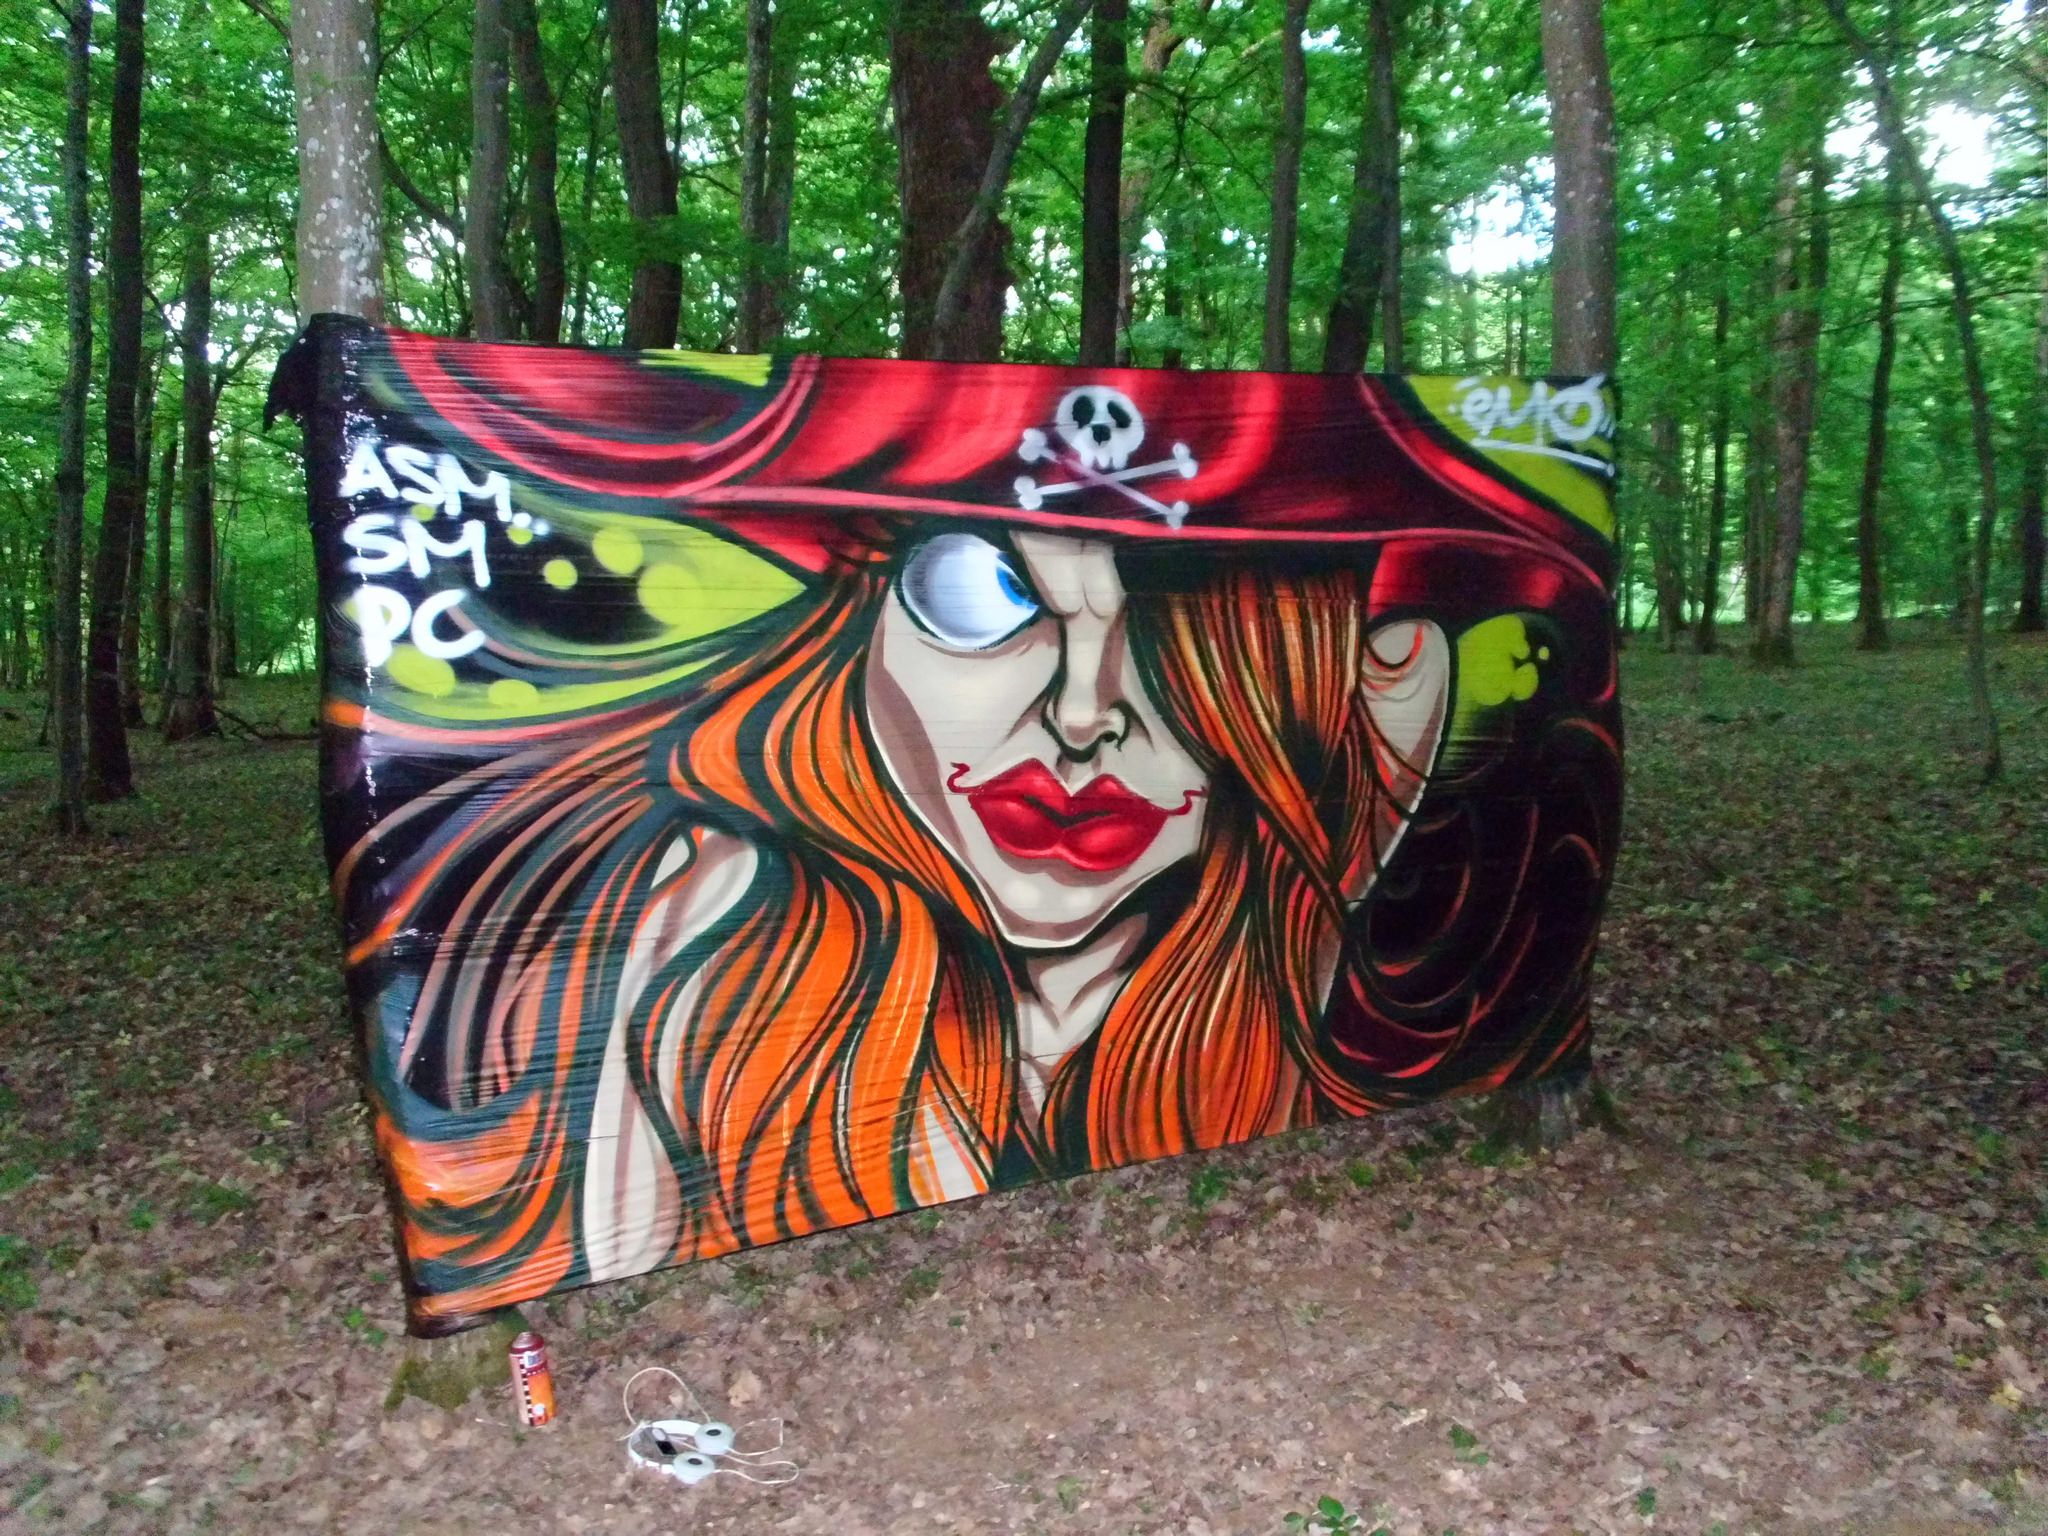 Graffiti art on wood - Lady Pirate In The Wood By Asm Crew L Cellograff